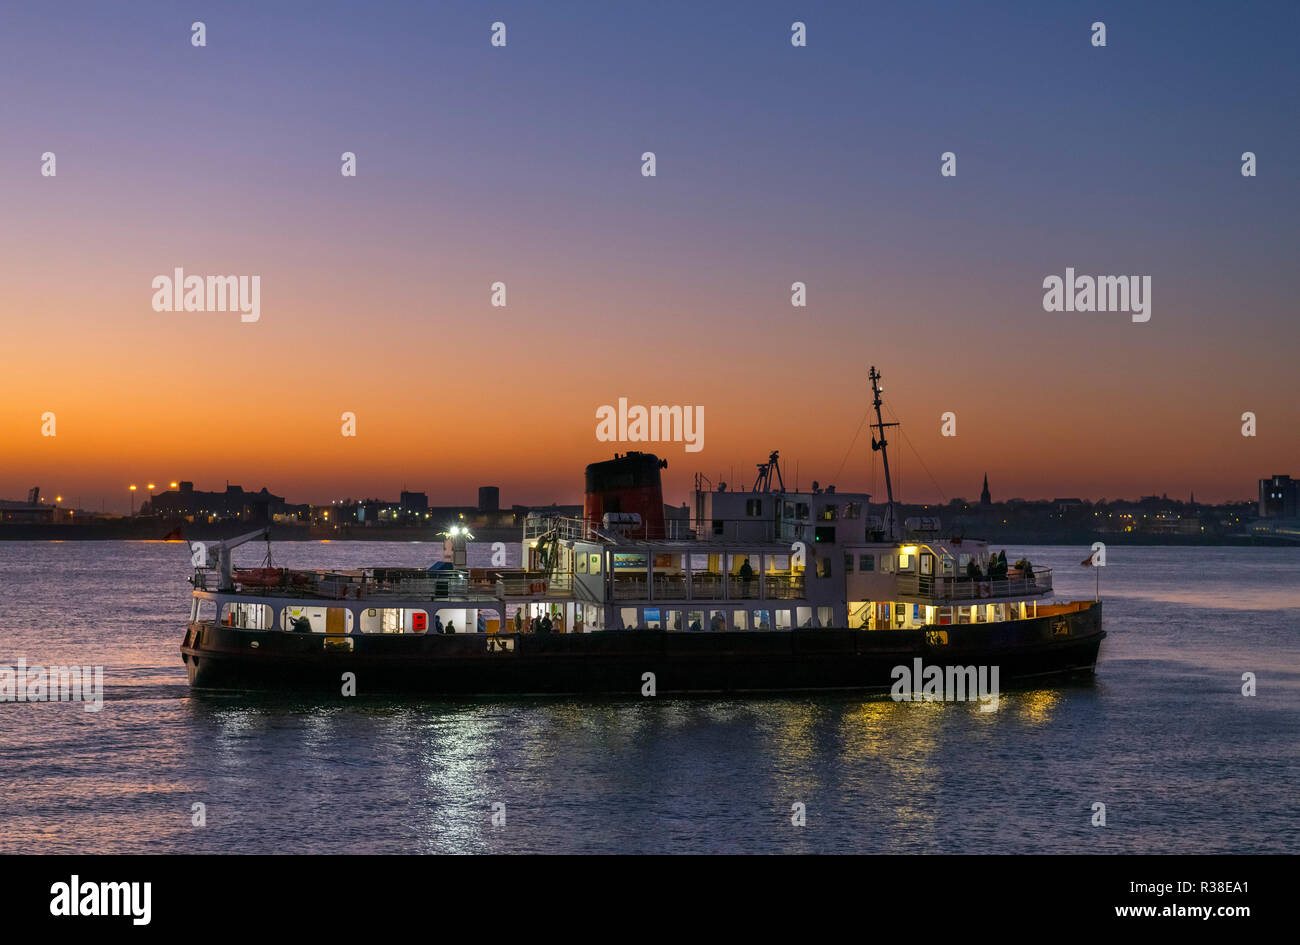 Ferry on the River Mersey at night looking towards Birkenhead, Liverpool, England, UK - Stock Image